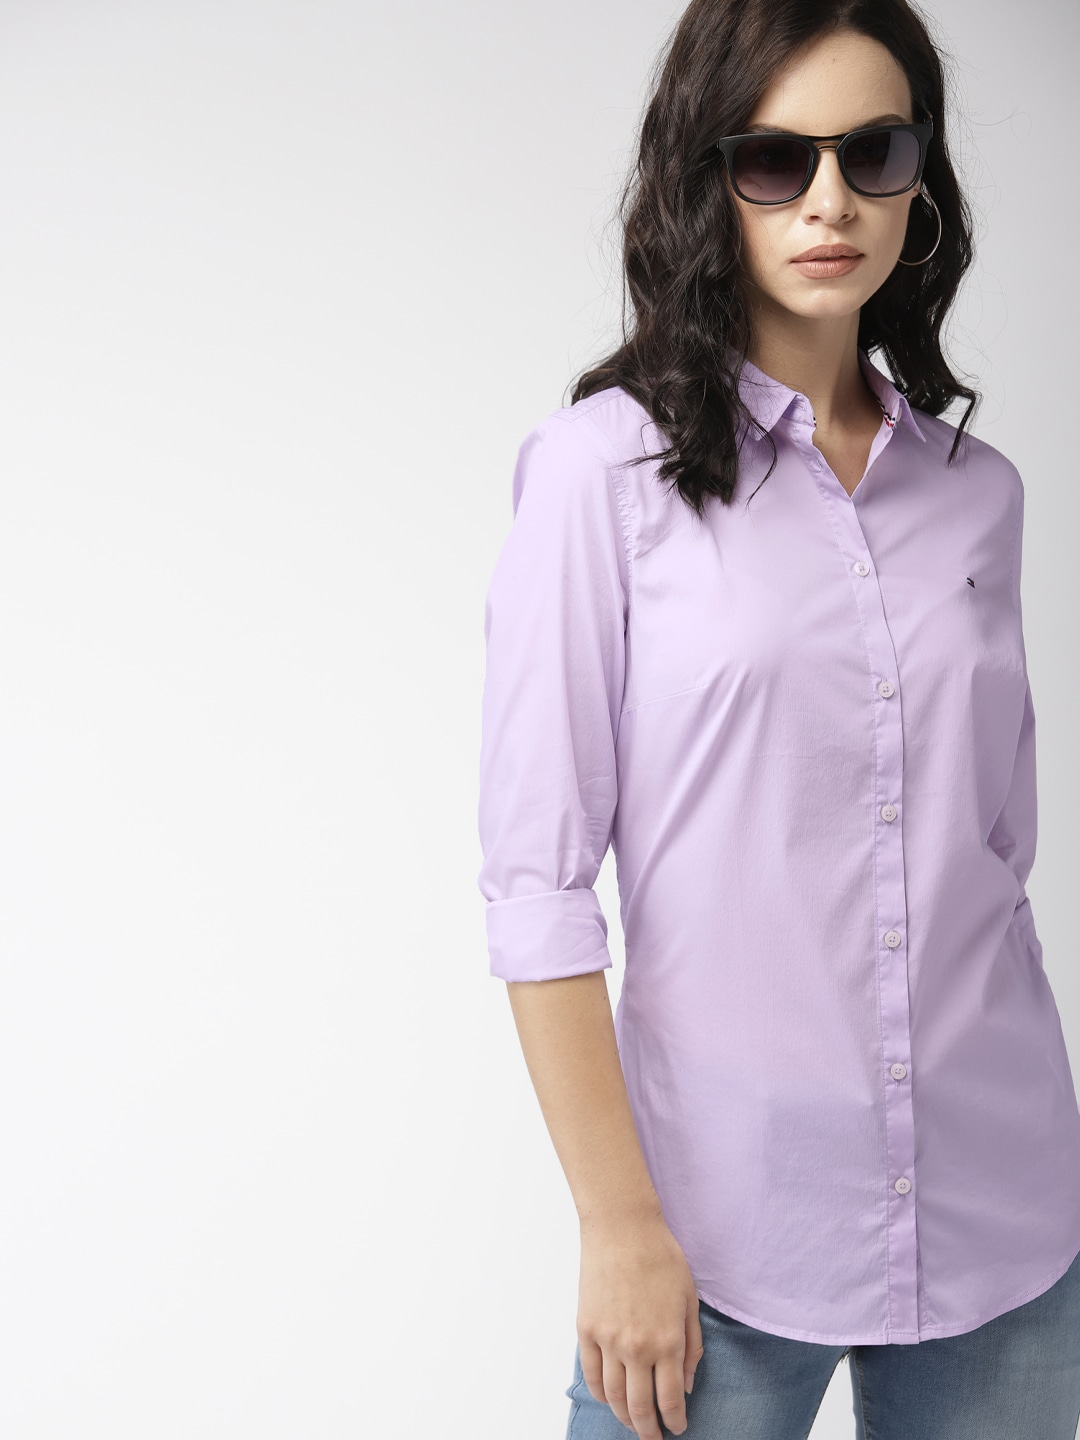 05ec5602021 Women Shirts - Buy Shirts for Women Online in India